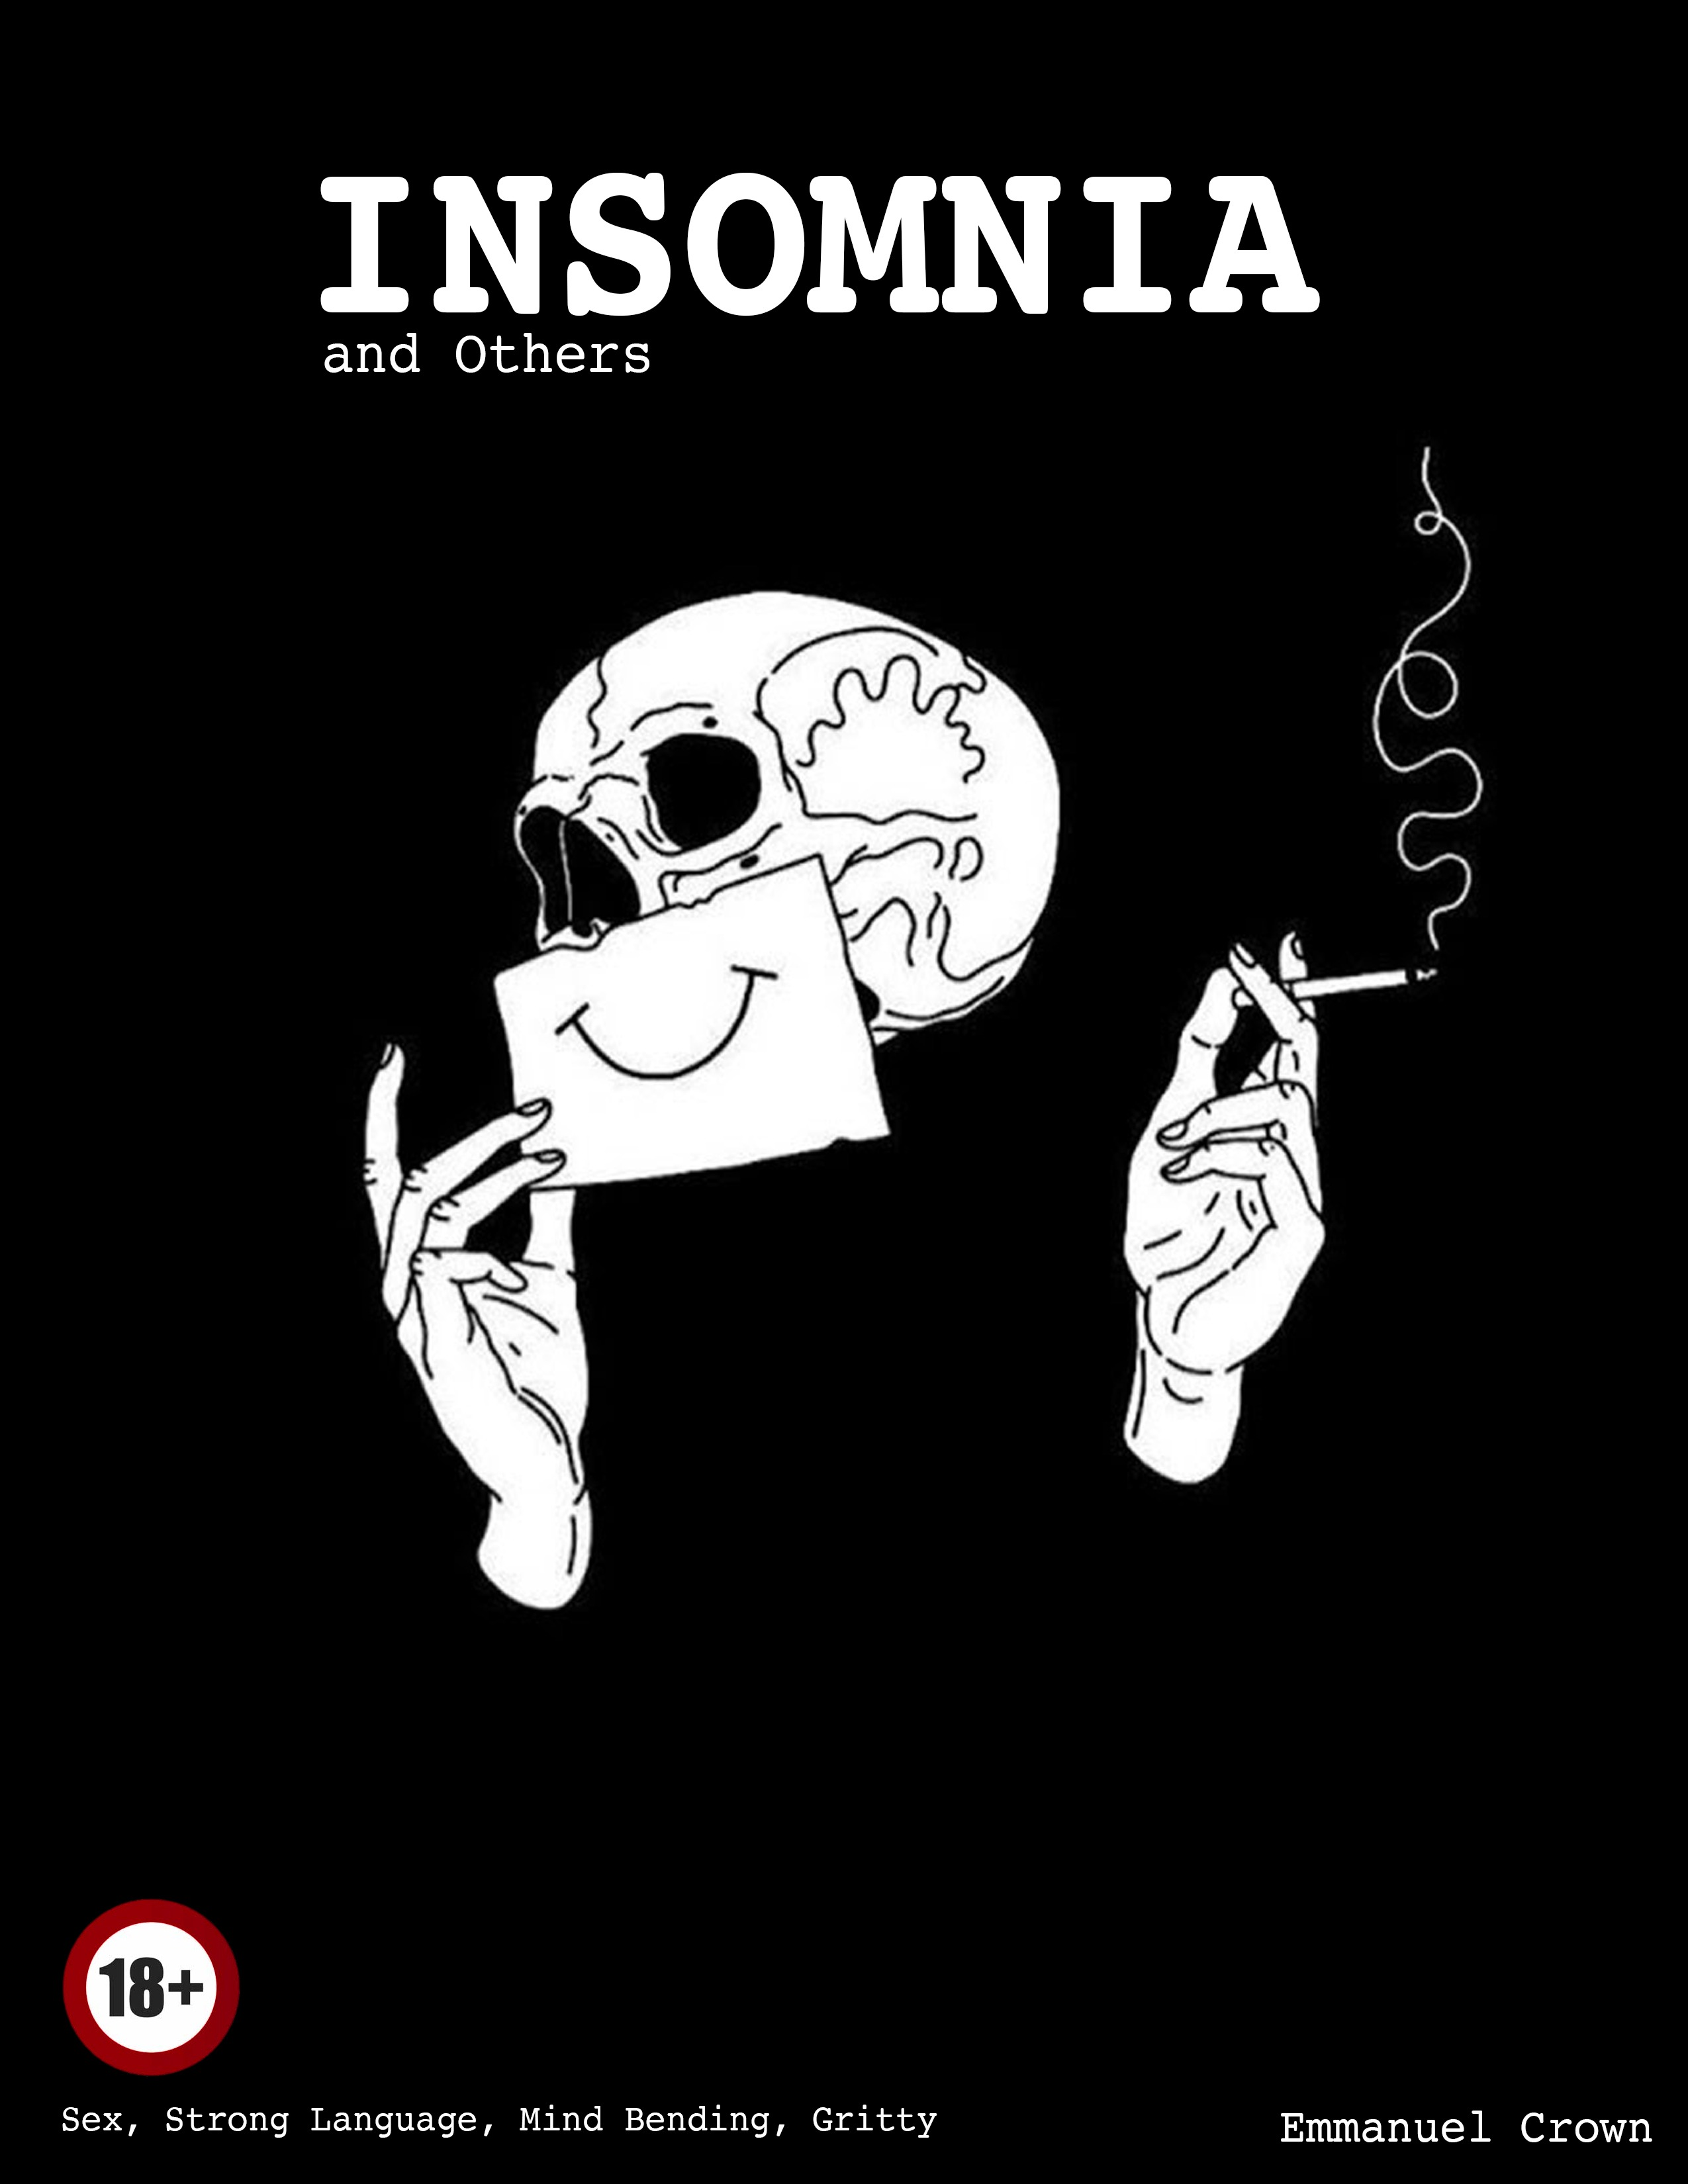 INSOMNIA and Others